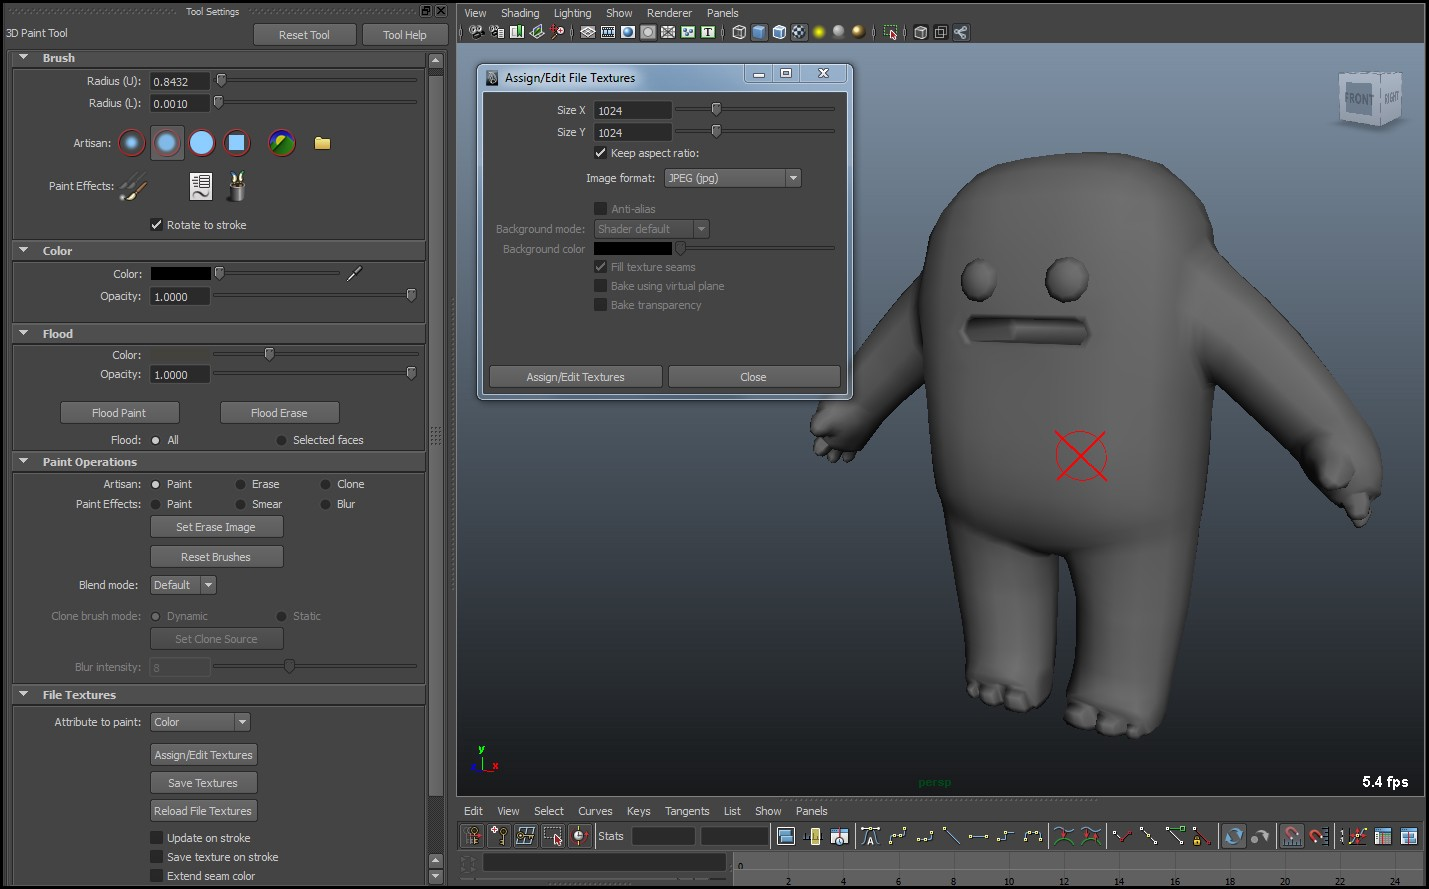 15 Best Tools for 3D Modeling Software - Joanna Ngai - Medium